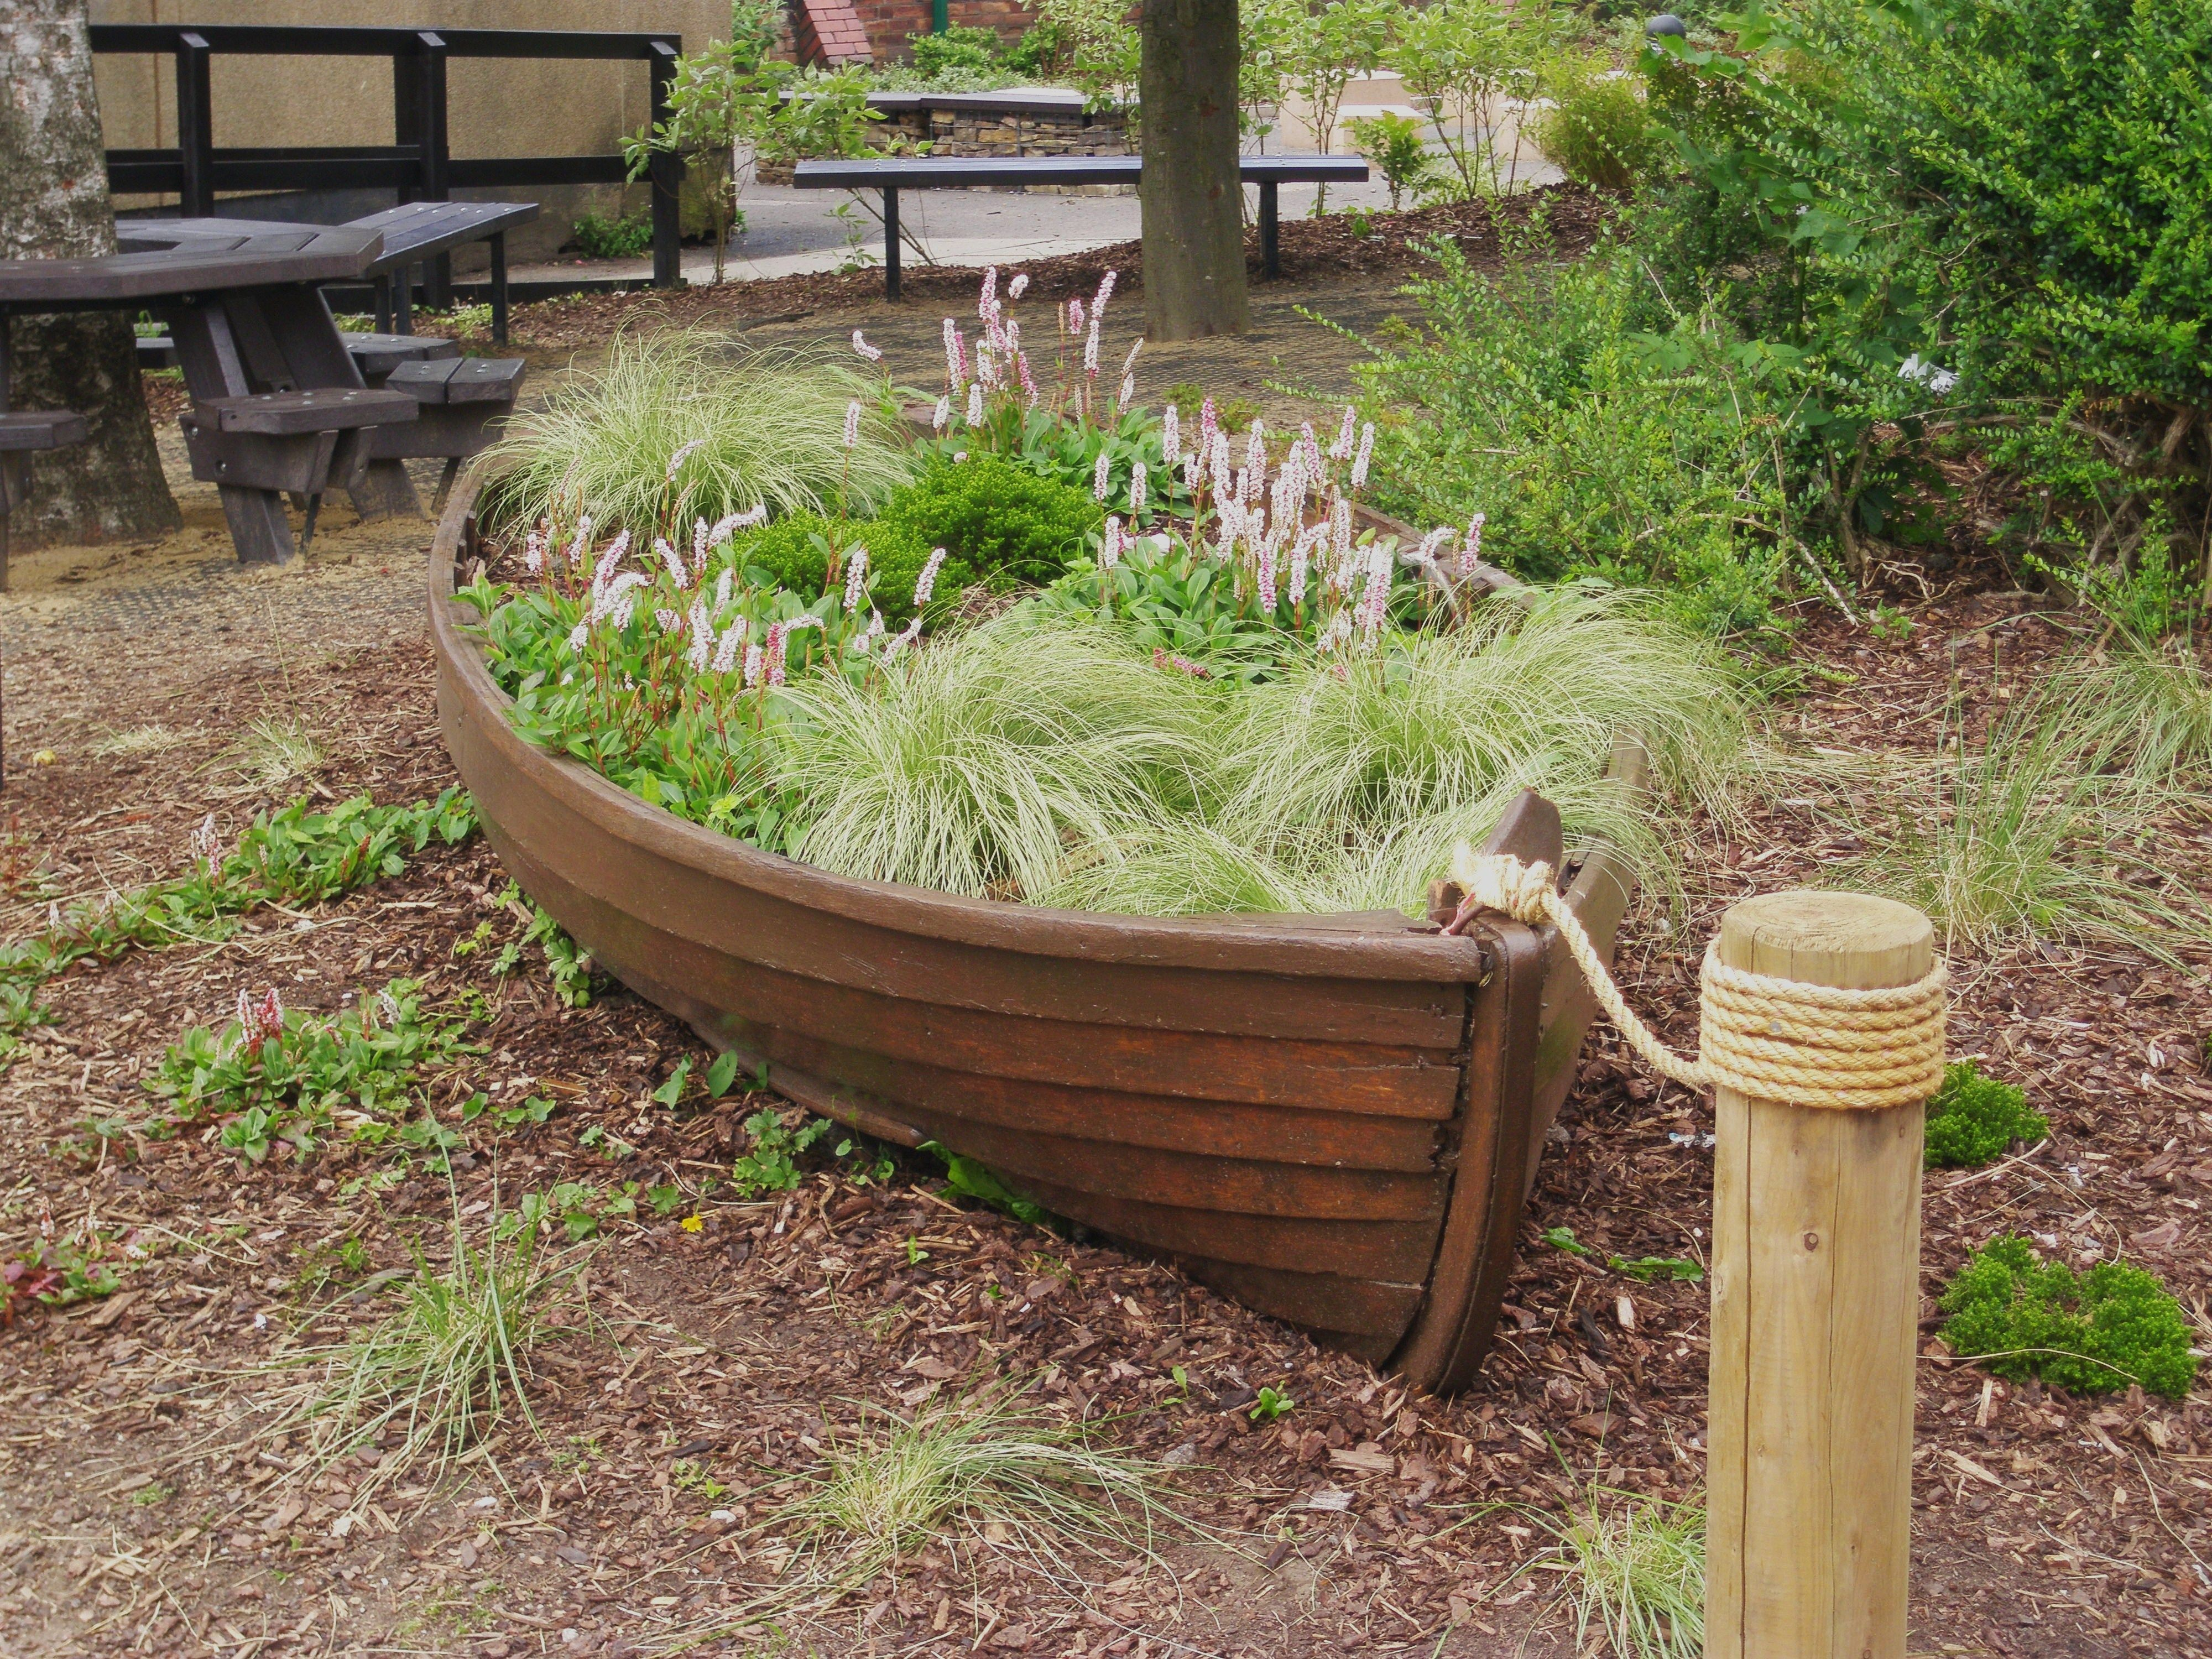 Recycled boat play feature in local primary school grounds Design